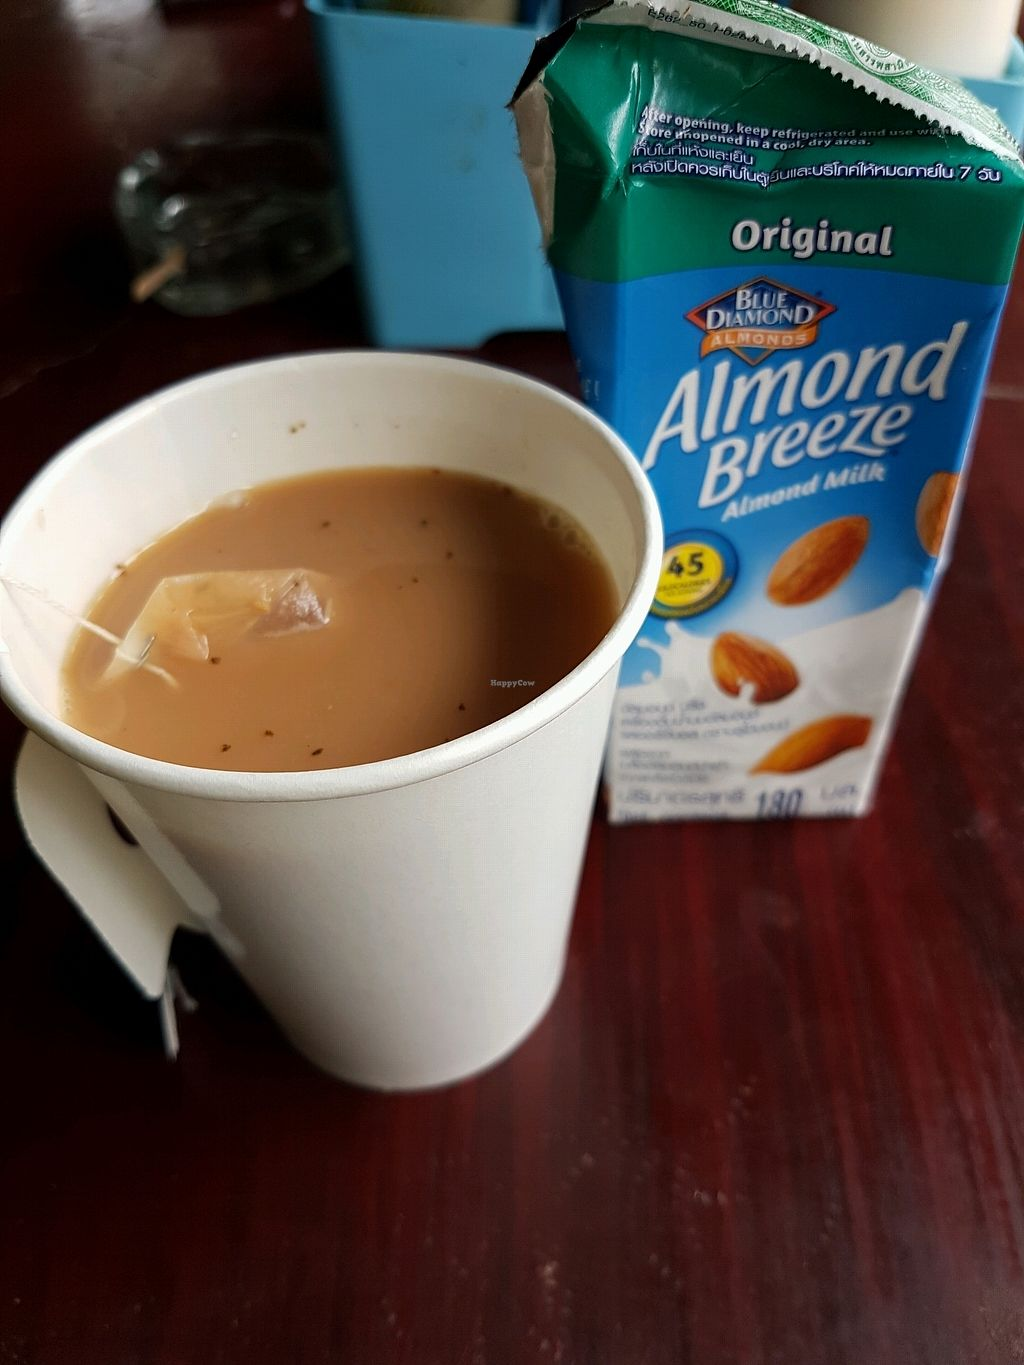 "Photo of Aleena - Food Stall  by <a href=""/members/profile/ZuzannaChronowska"">ZuzannaChronowska</a> <br/>chai tea with almond milk  <br/> November 29, 2017  - <a href='/contact/abuse/image/106128/330325'>Report</a>"